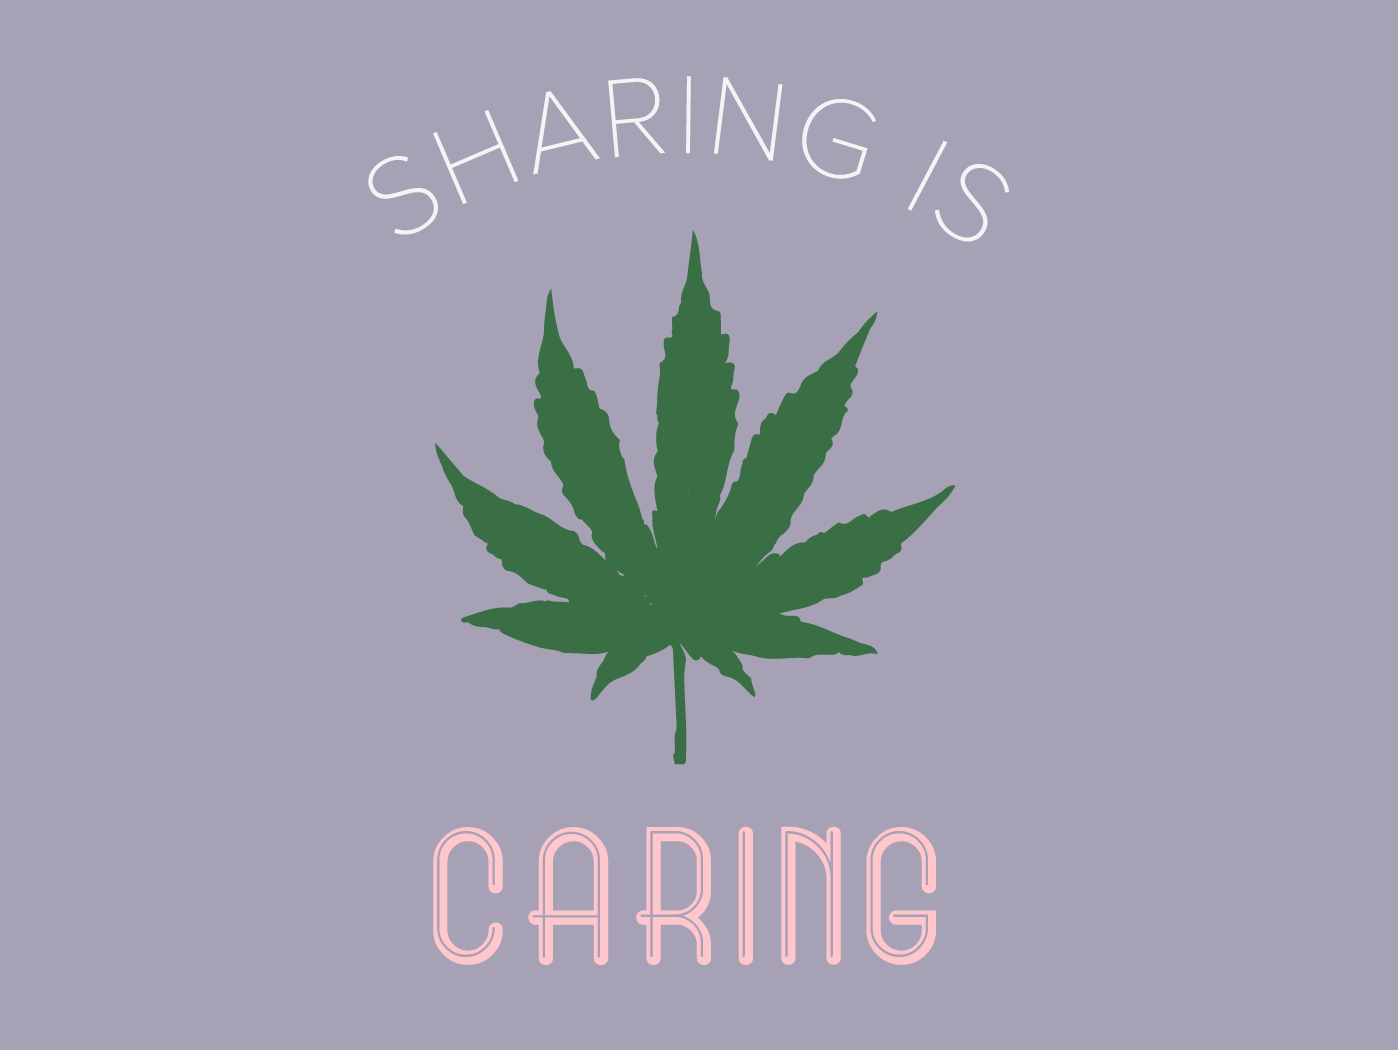 Sharing is Caring 2 vector logo branded content 2d digitalcontent content illustrator graphicdesign